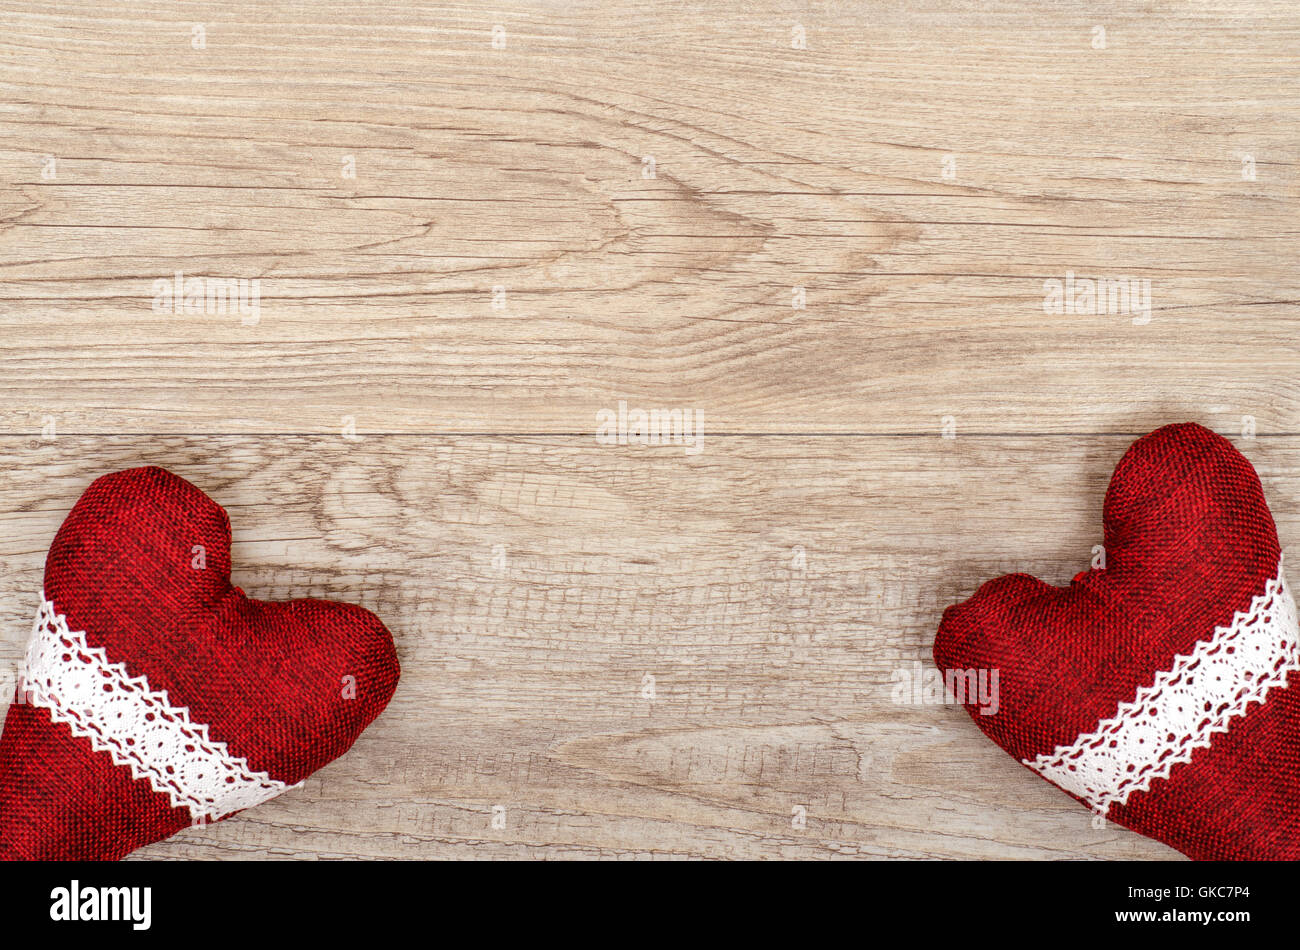 wooden board with two red hearts - Stock Image